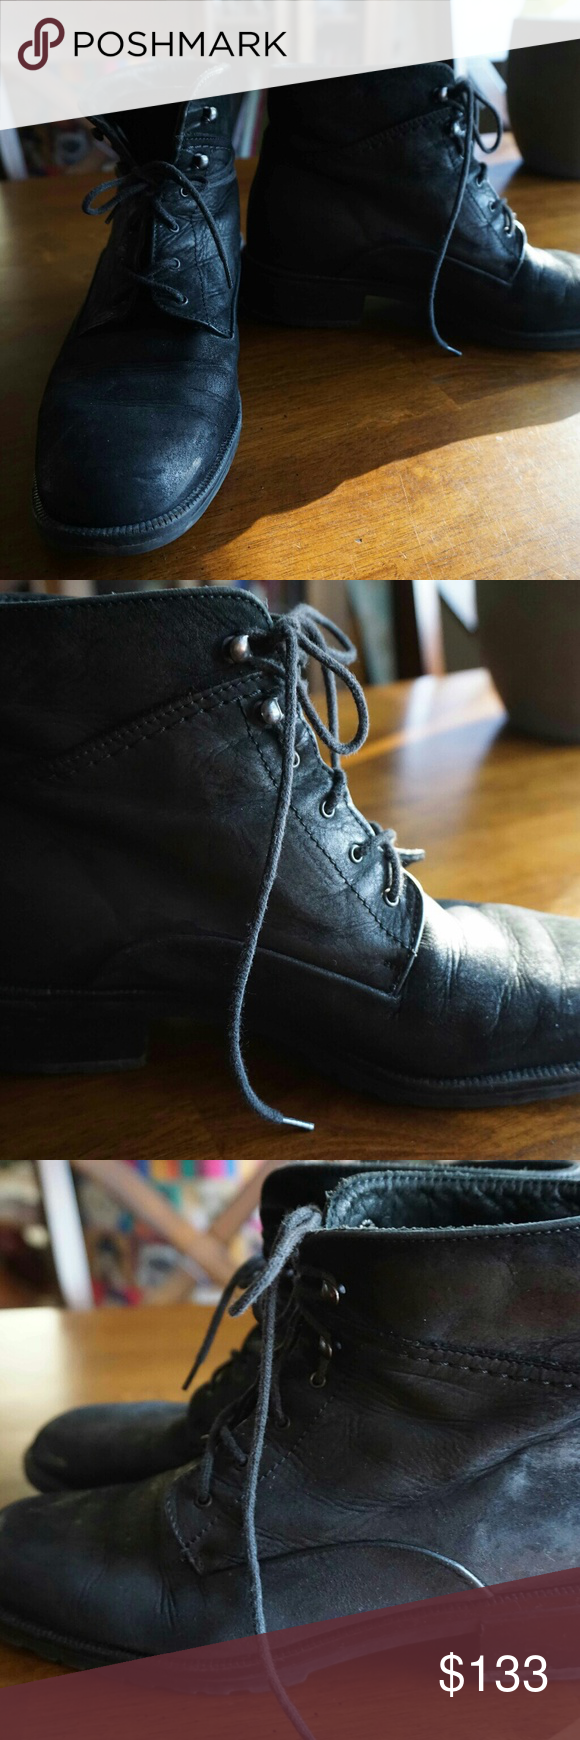 Bally black leather lace up boot Beautifully made black lace up boots by Bally. Can be worn laced up to the top or wrapped around the ankle and folded for a more casual look. They're super sturdy and we'll made. Bally Shoes Lace Up Boots